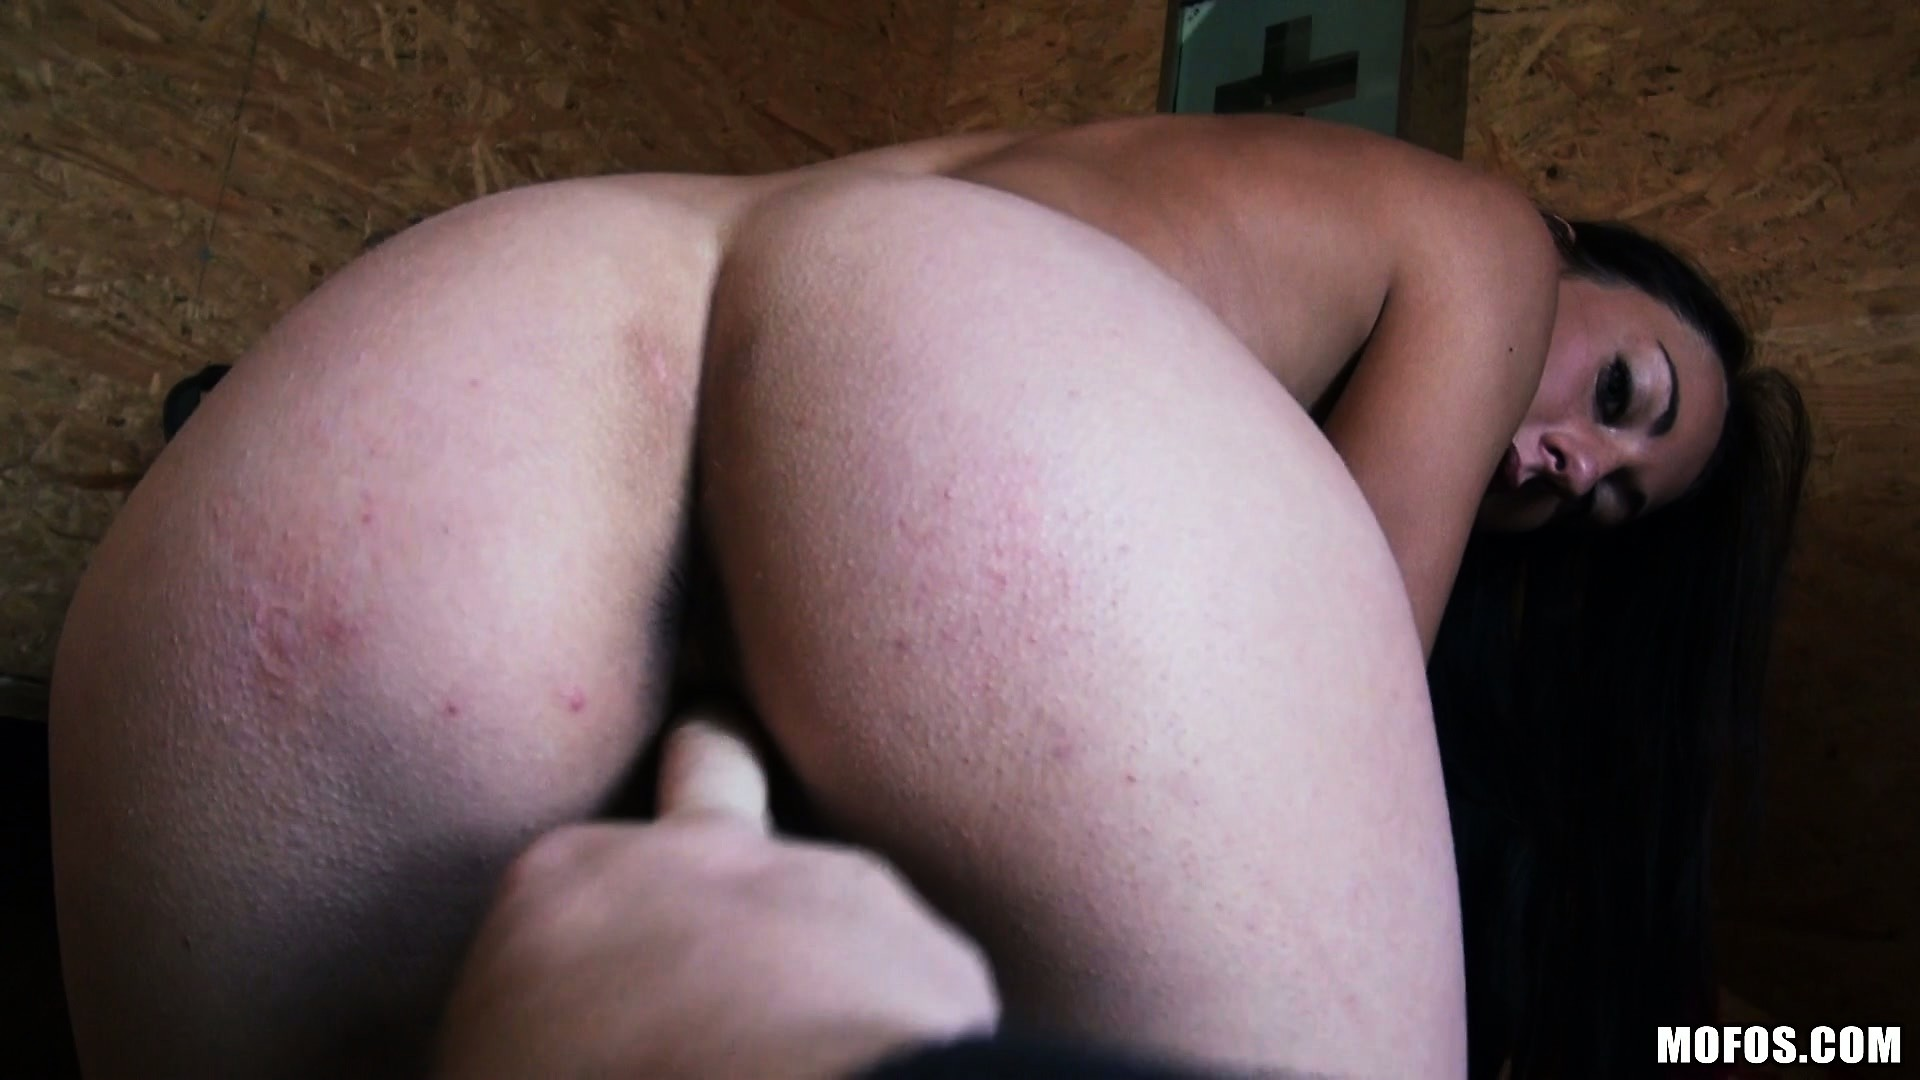 Porno Video of She Drops Her Clothes, Revealing Her Superb Ass, Tiny Tits And Juicy Peach